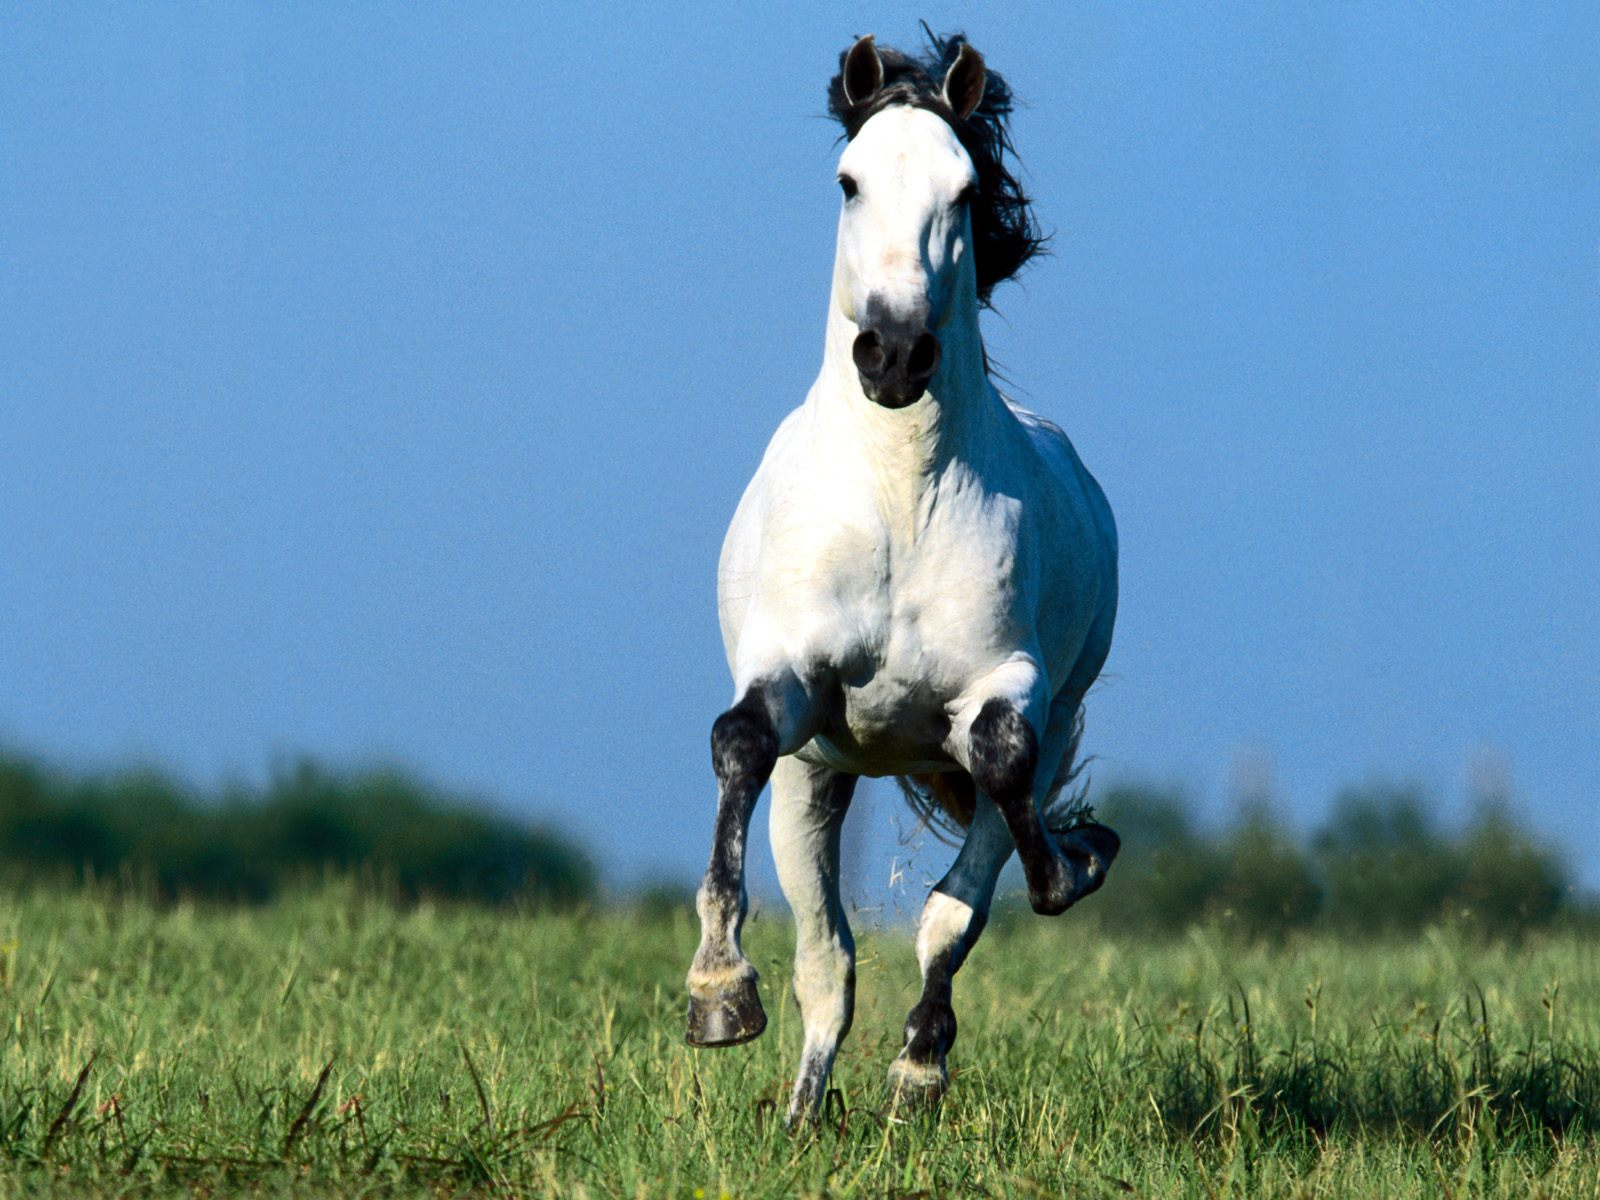 White running horses - photo#37